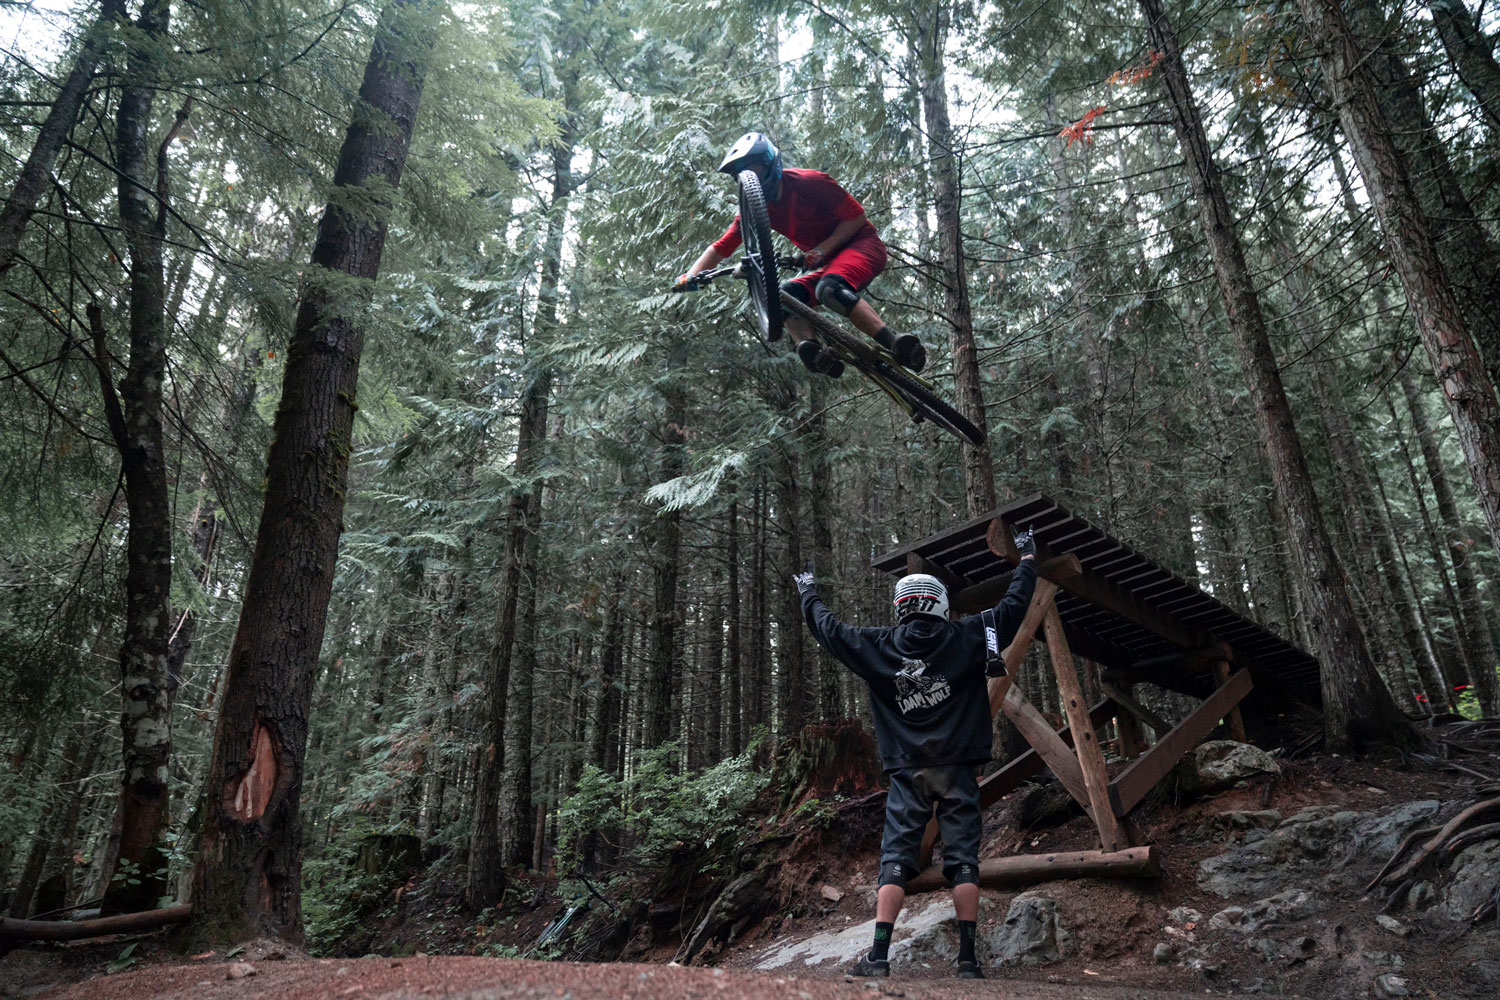 North American Bike Park Review Tour - Whistler Bike Park